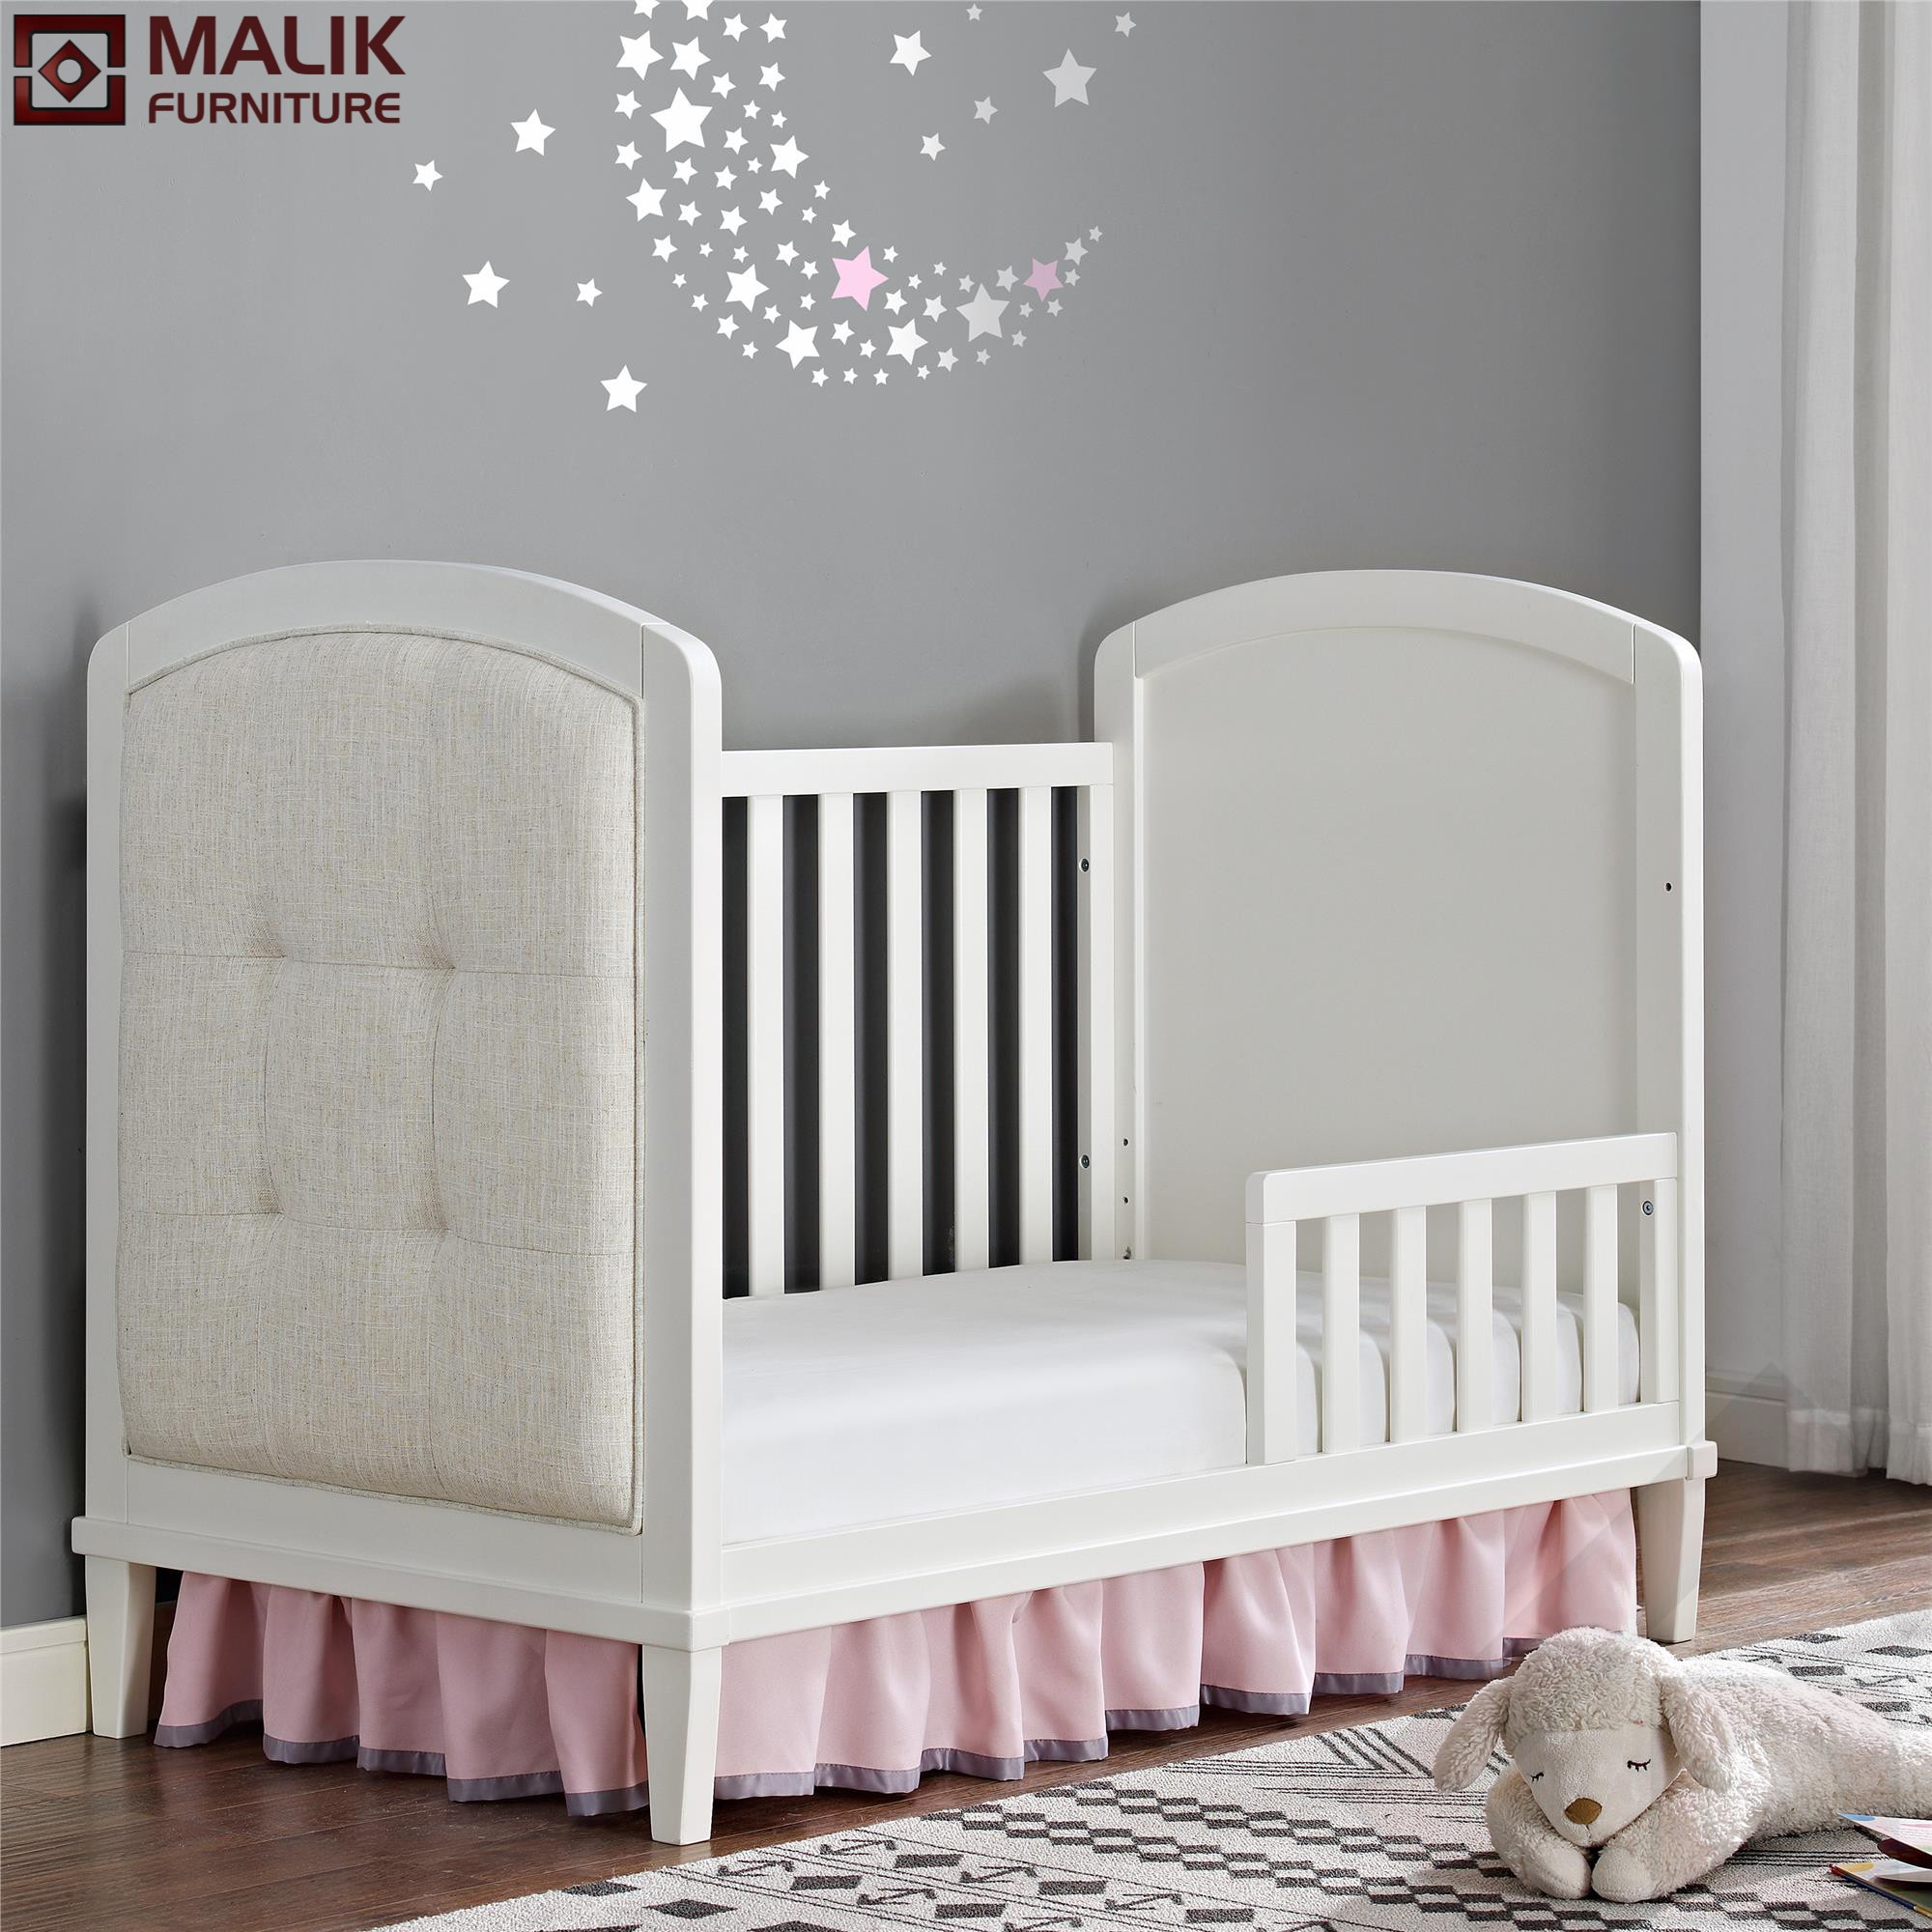 Best Cribs For Baby | Baby Cot | Beautiful Cribs | White Crib